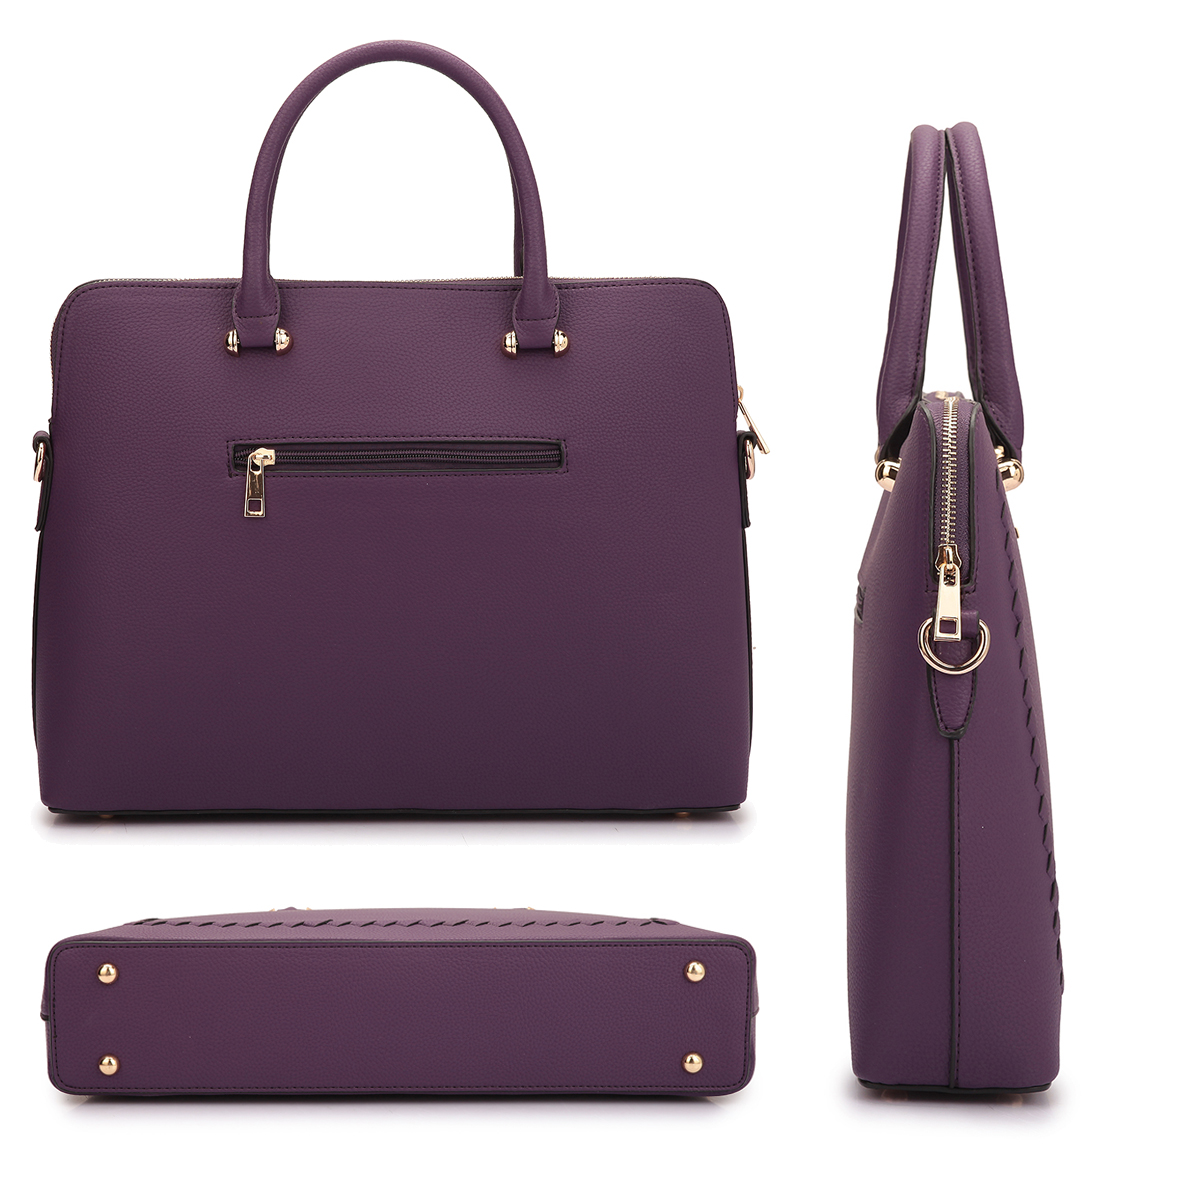 Dasein Briefcase For Her- with Stitching Design in Front